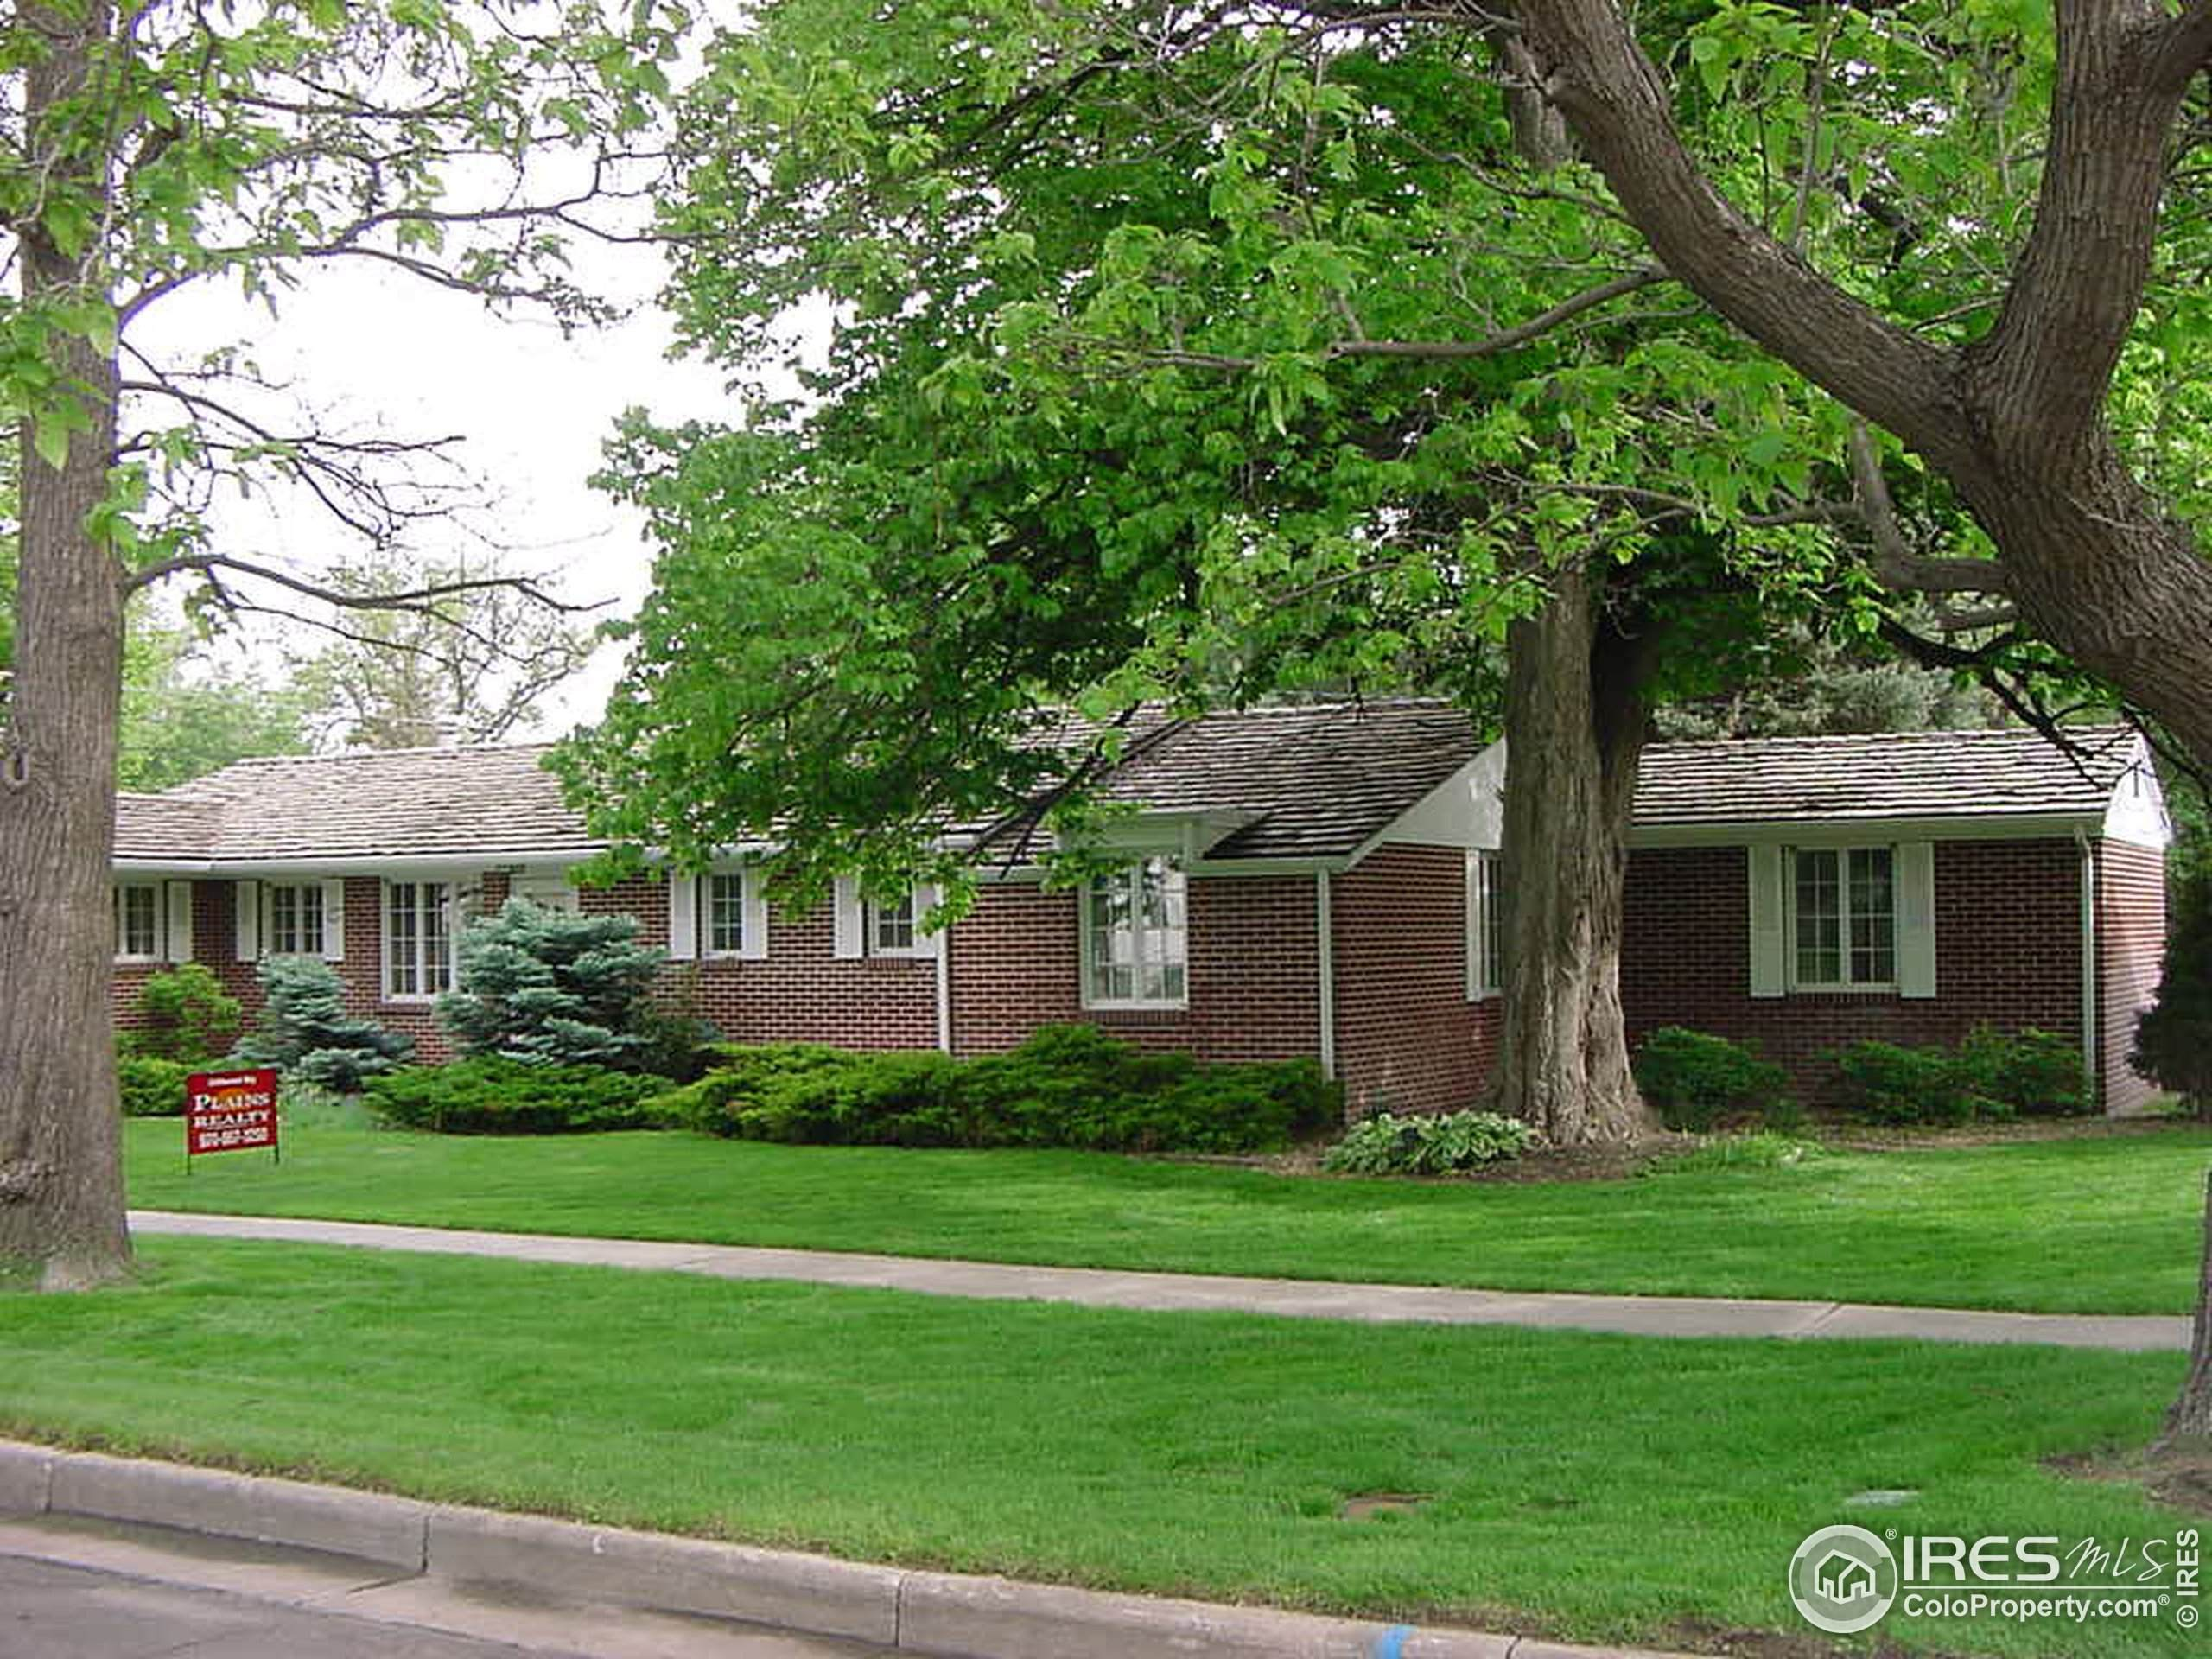 646 7th St, Berthoud, CO 80513 (MLS #900104) :: Tracy's Team